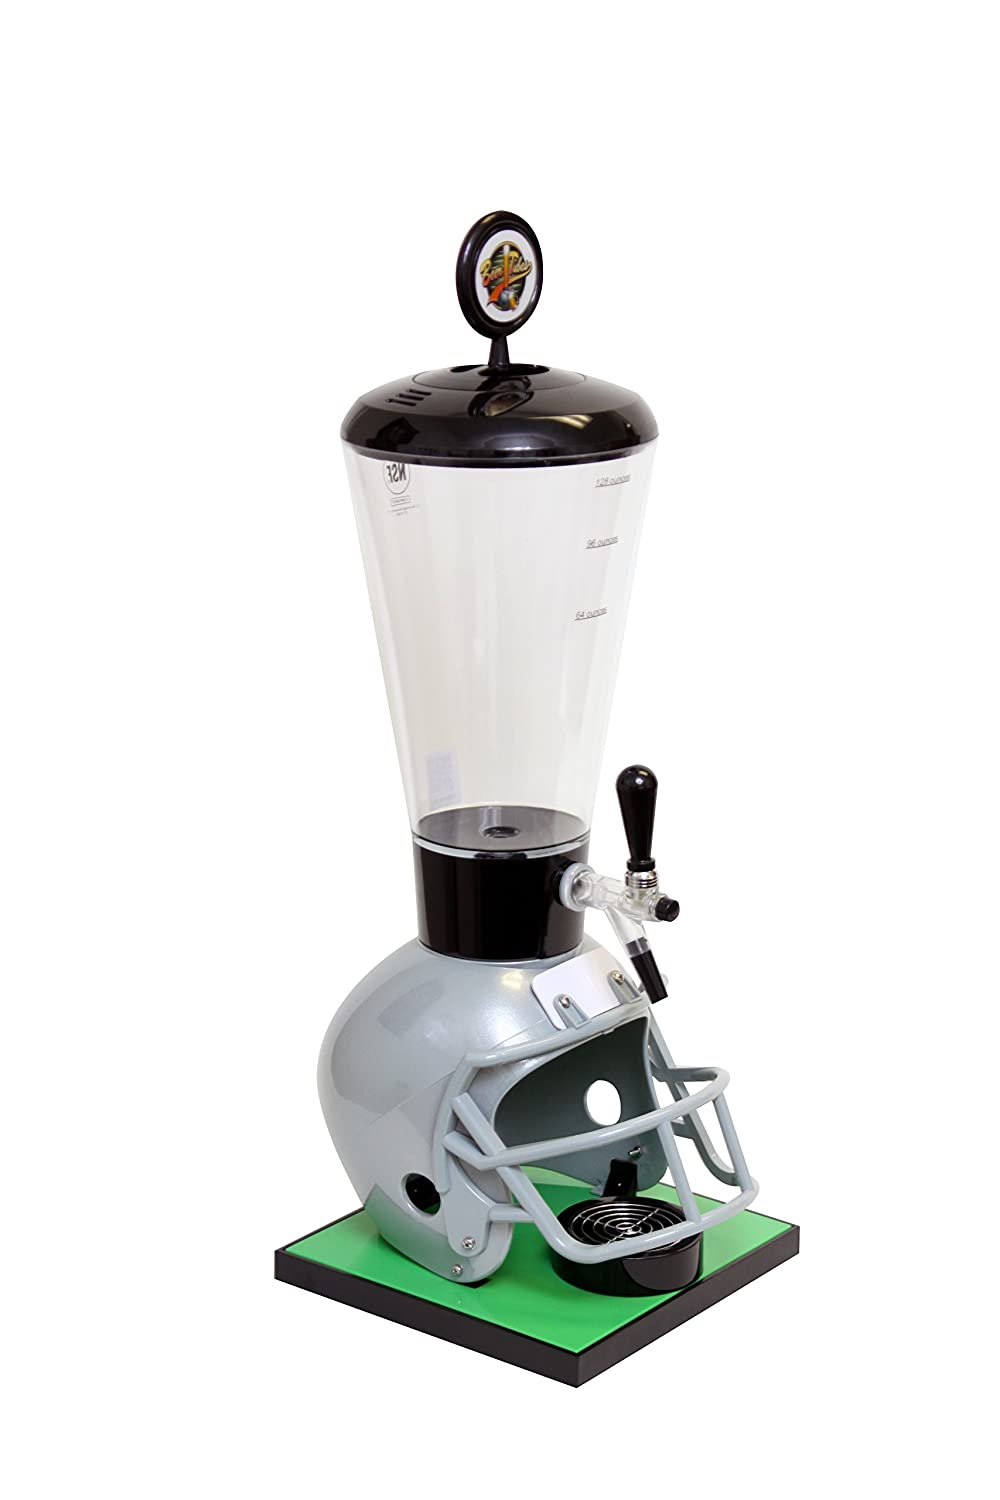 Beer Tubes Grey Football Helmet Beverage Tower Dispenser with Commercial Tap, 128 oz. Super Tube, FGR-ST-C